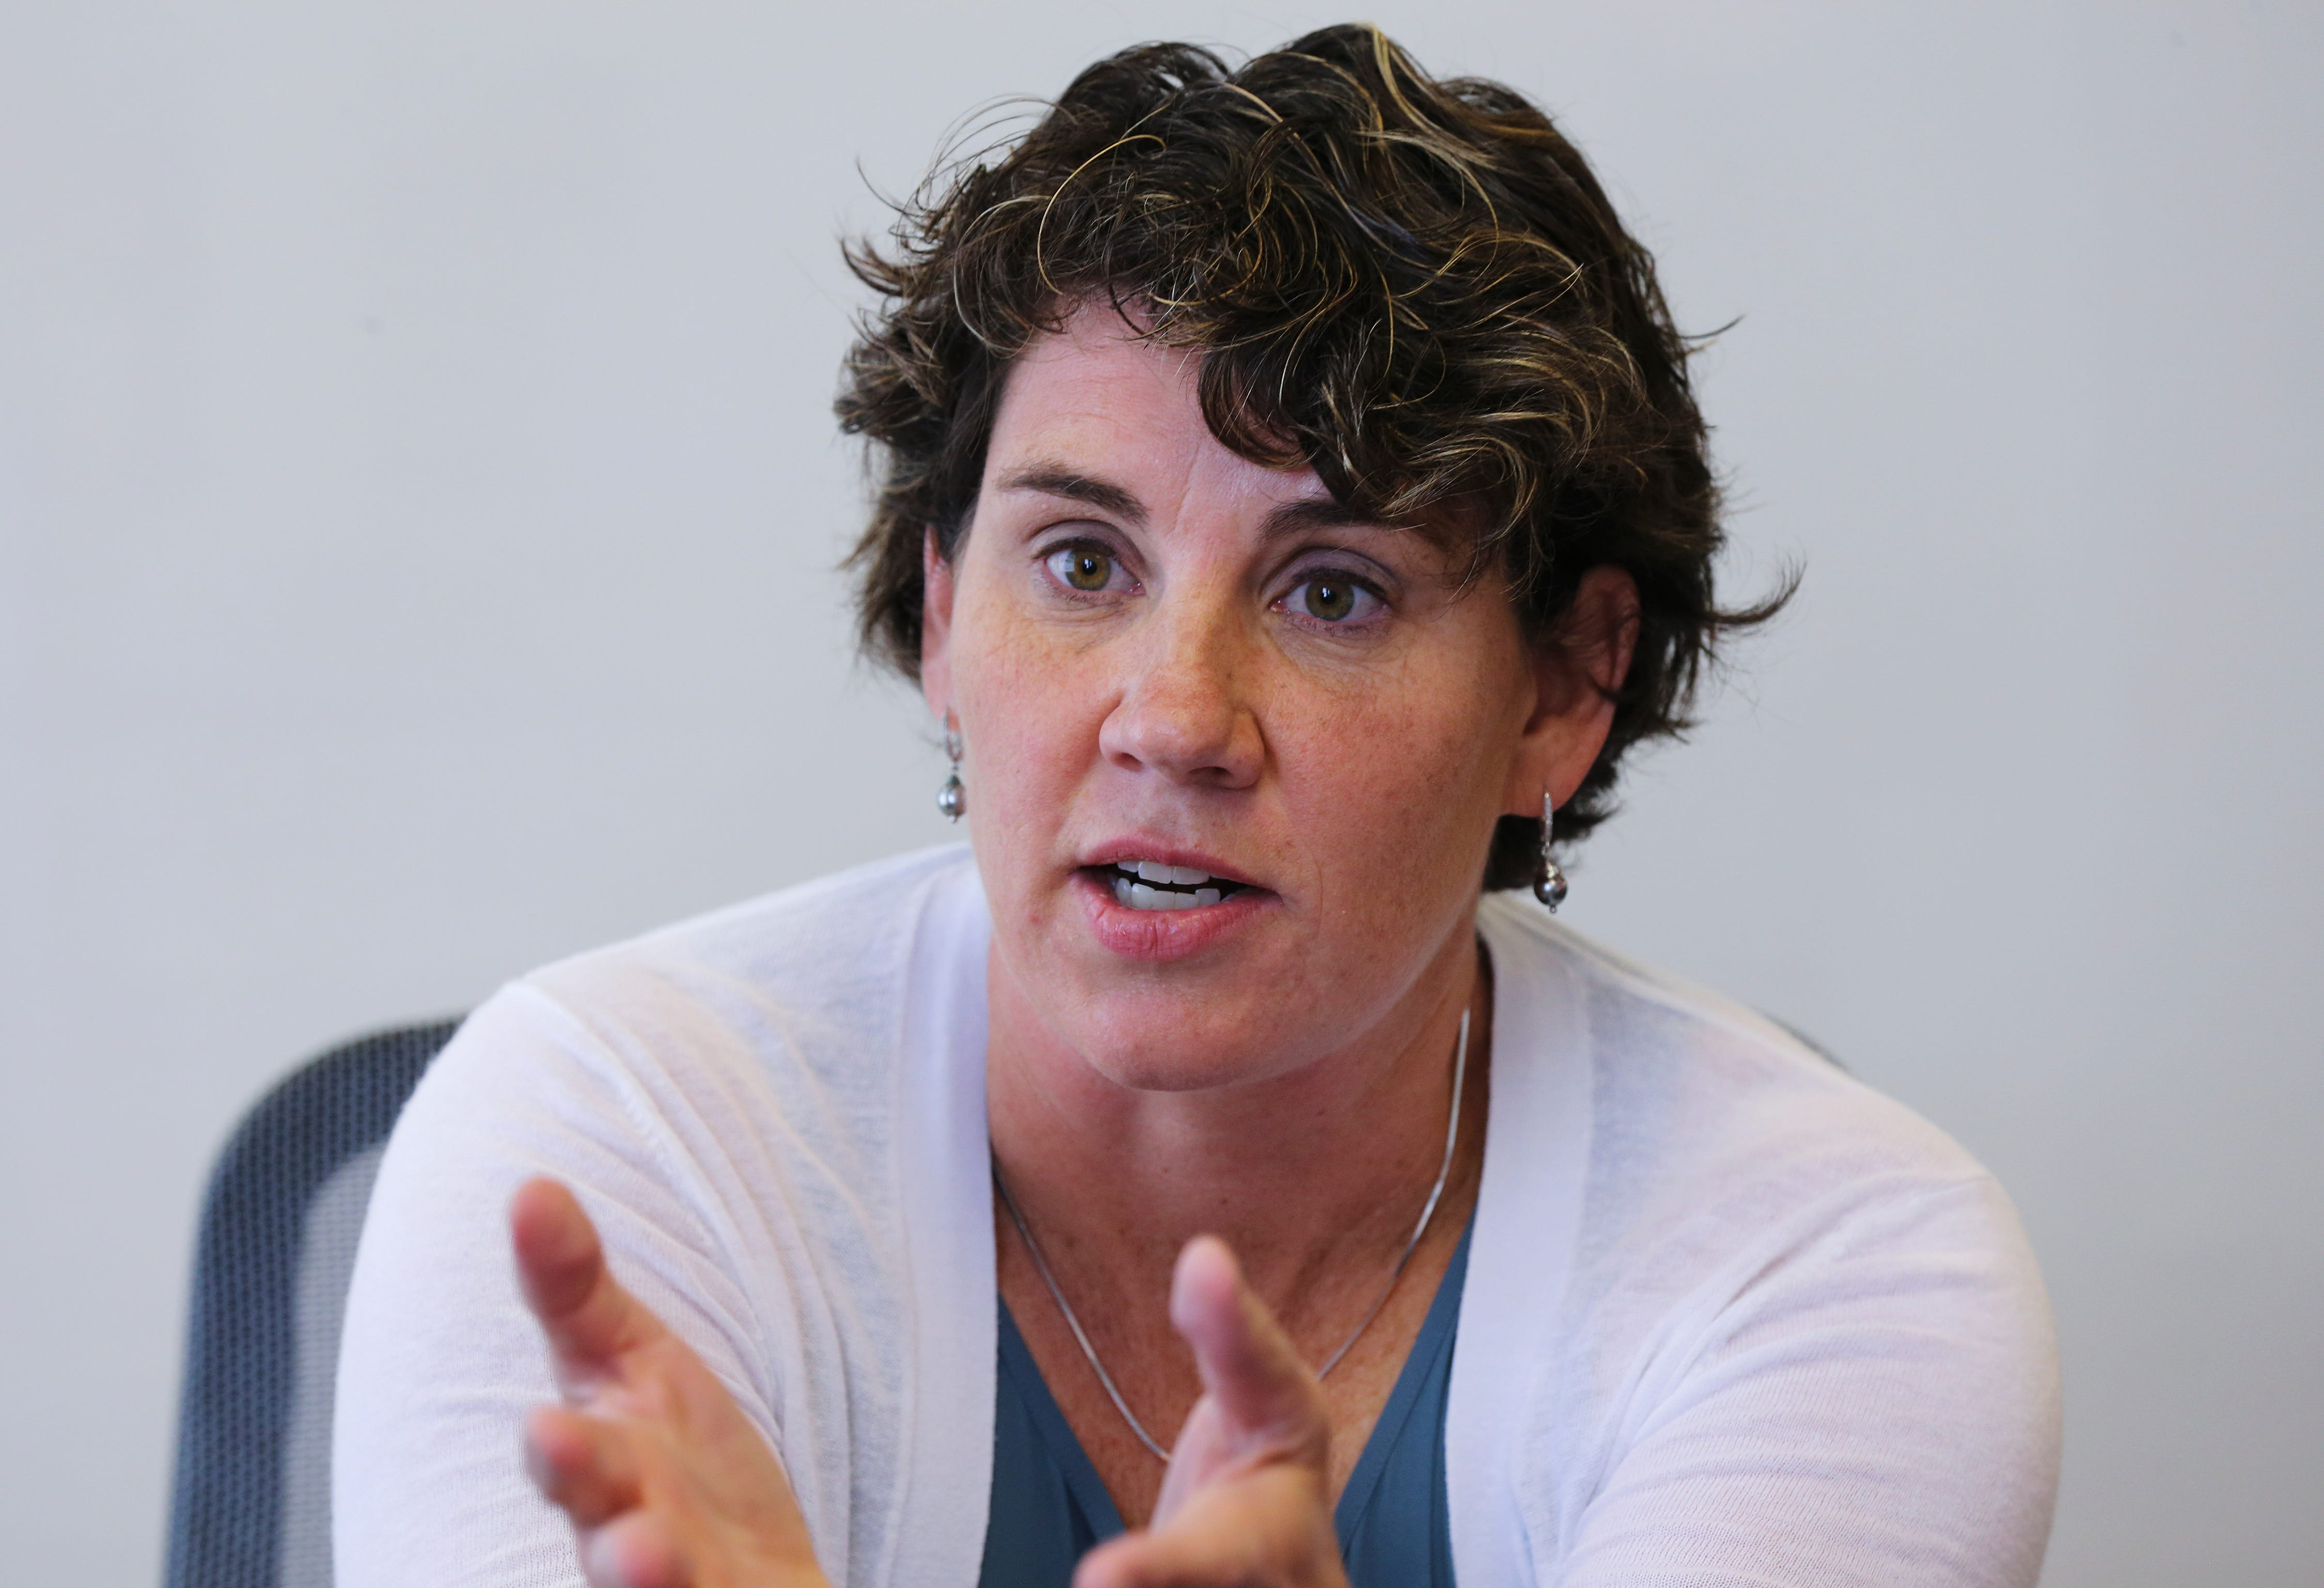 Kentucky US Senate primary: Amy McGrath squeaks out win over Charles Booker